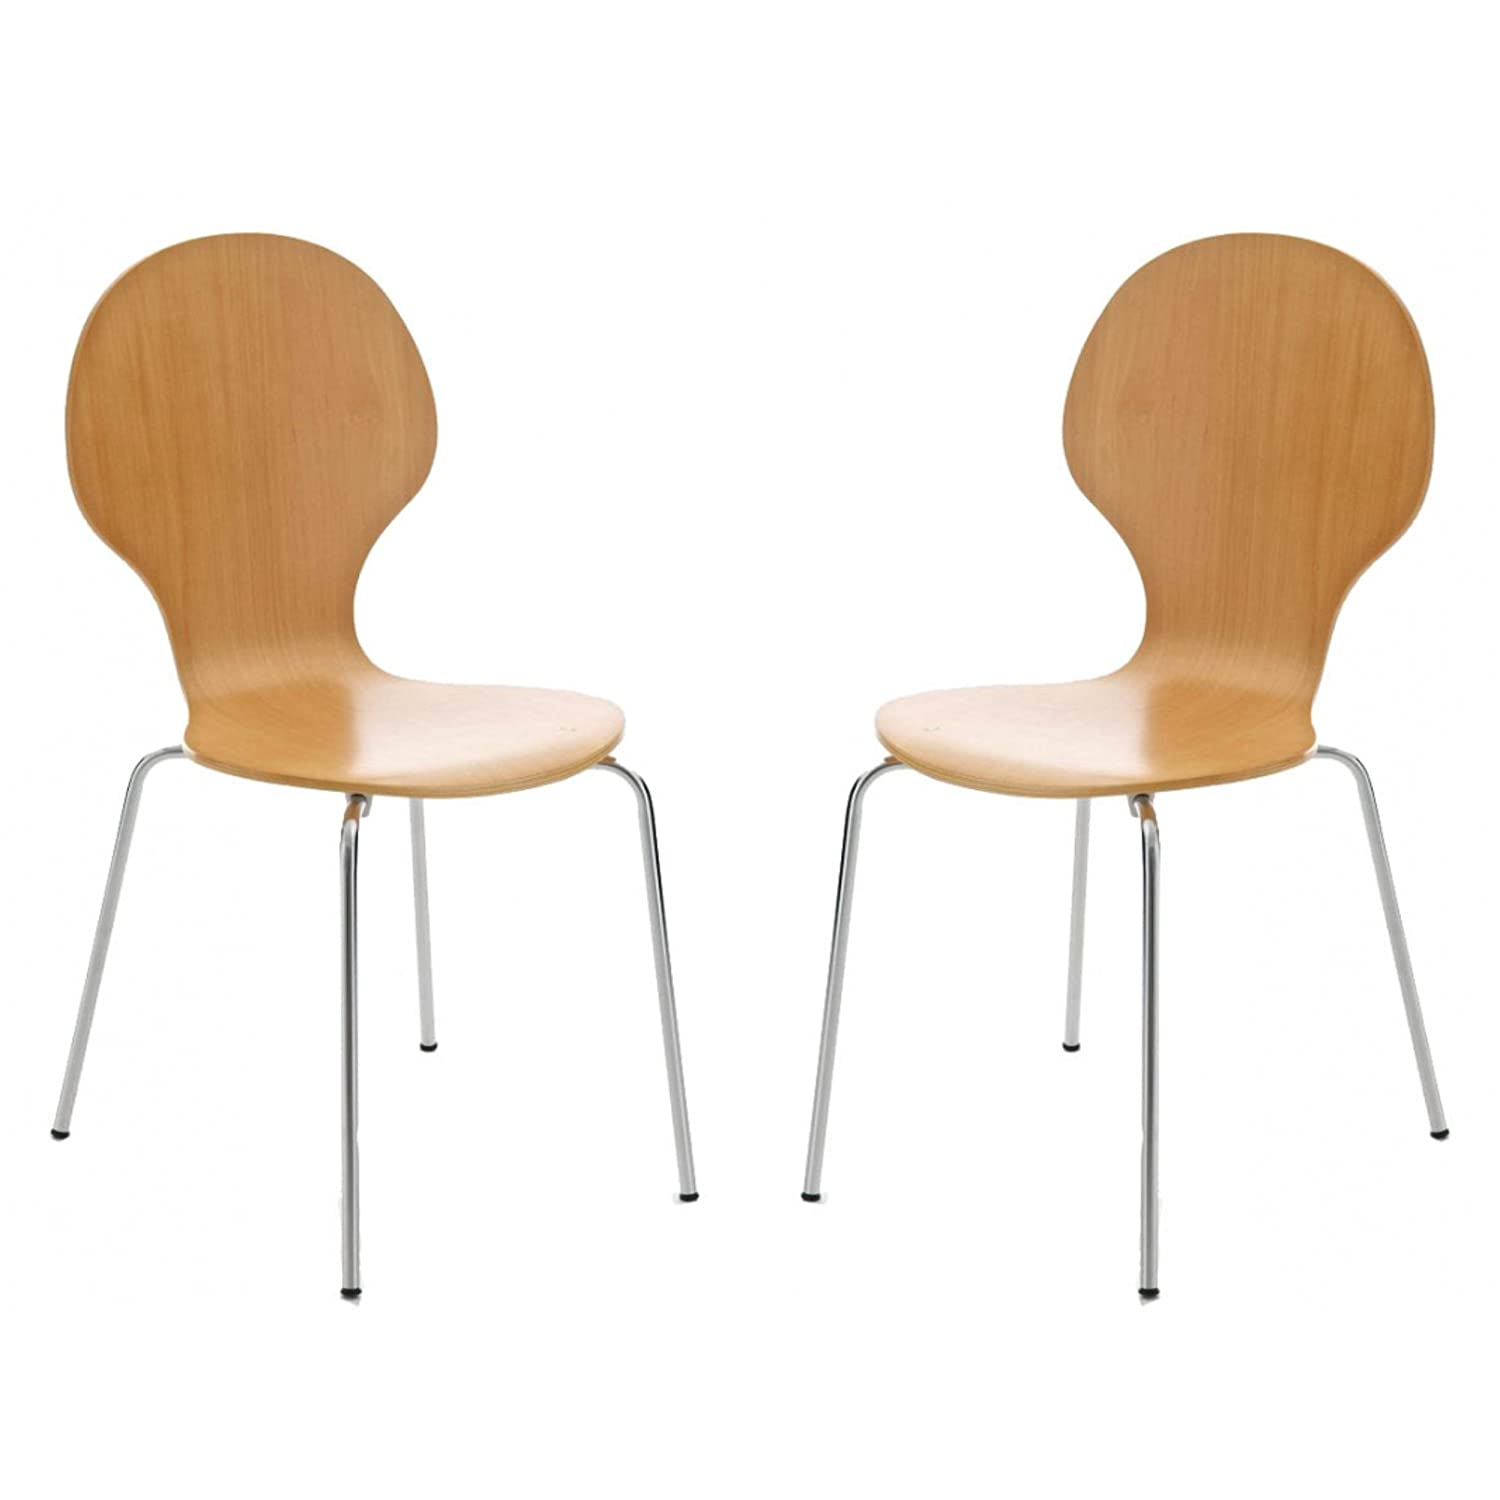 Your Price Furniture.com Set of 2 Beech Wood and Chrome Metal ...